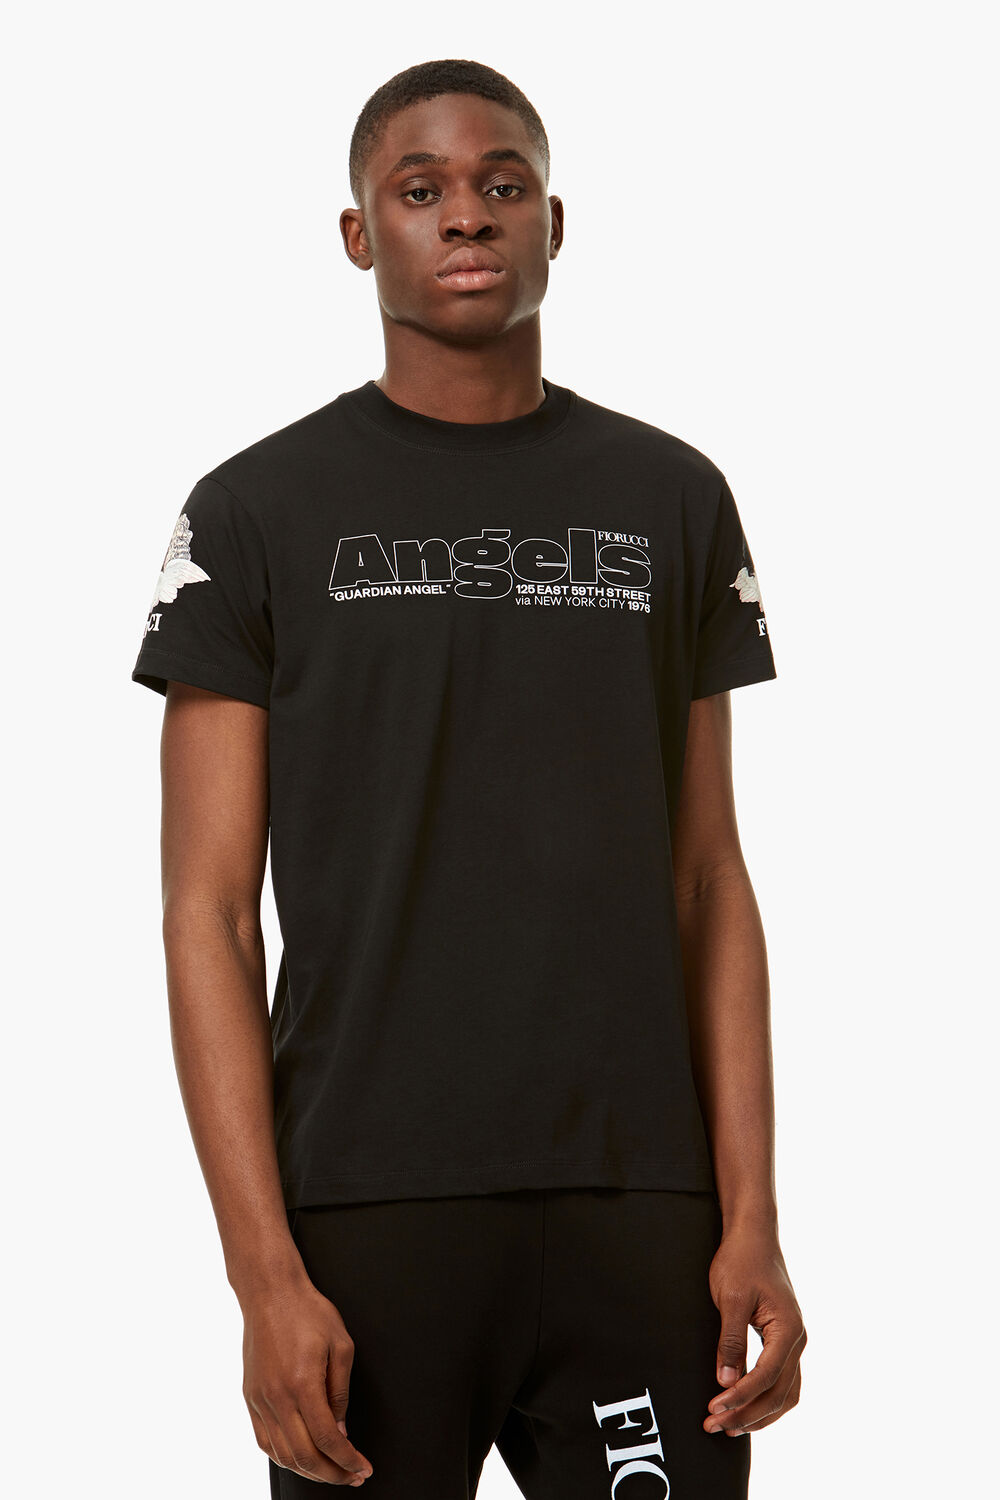 New York Angels T-Shirt Black